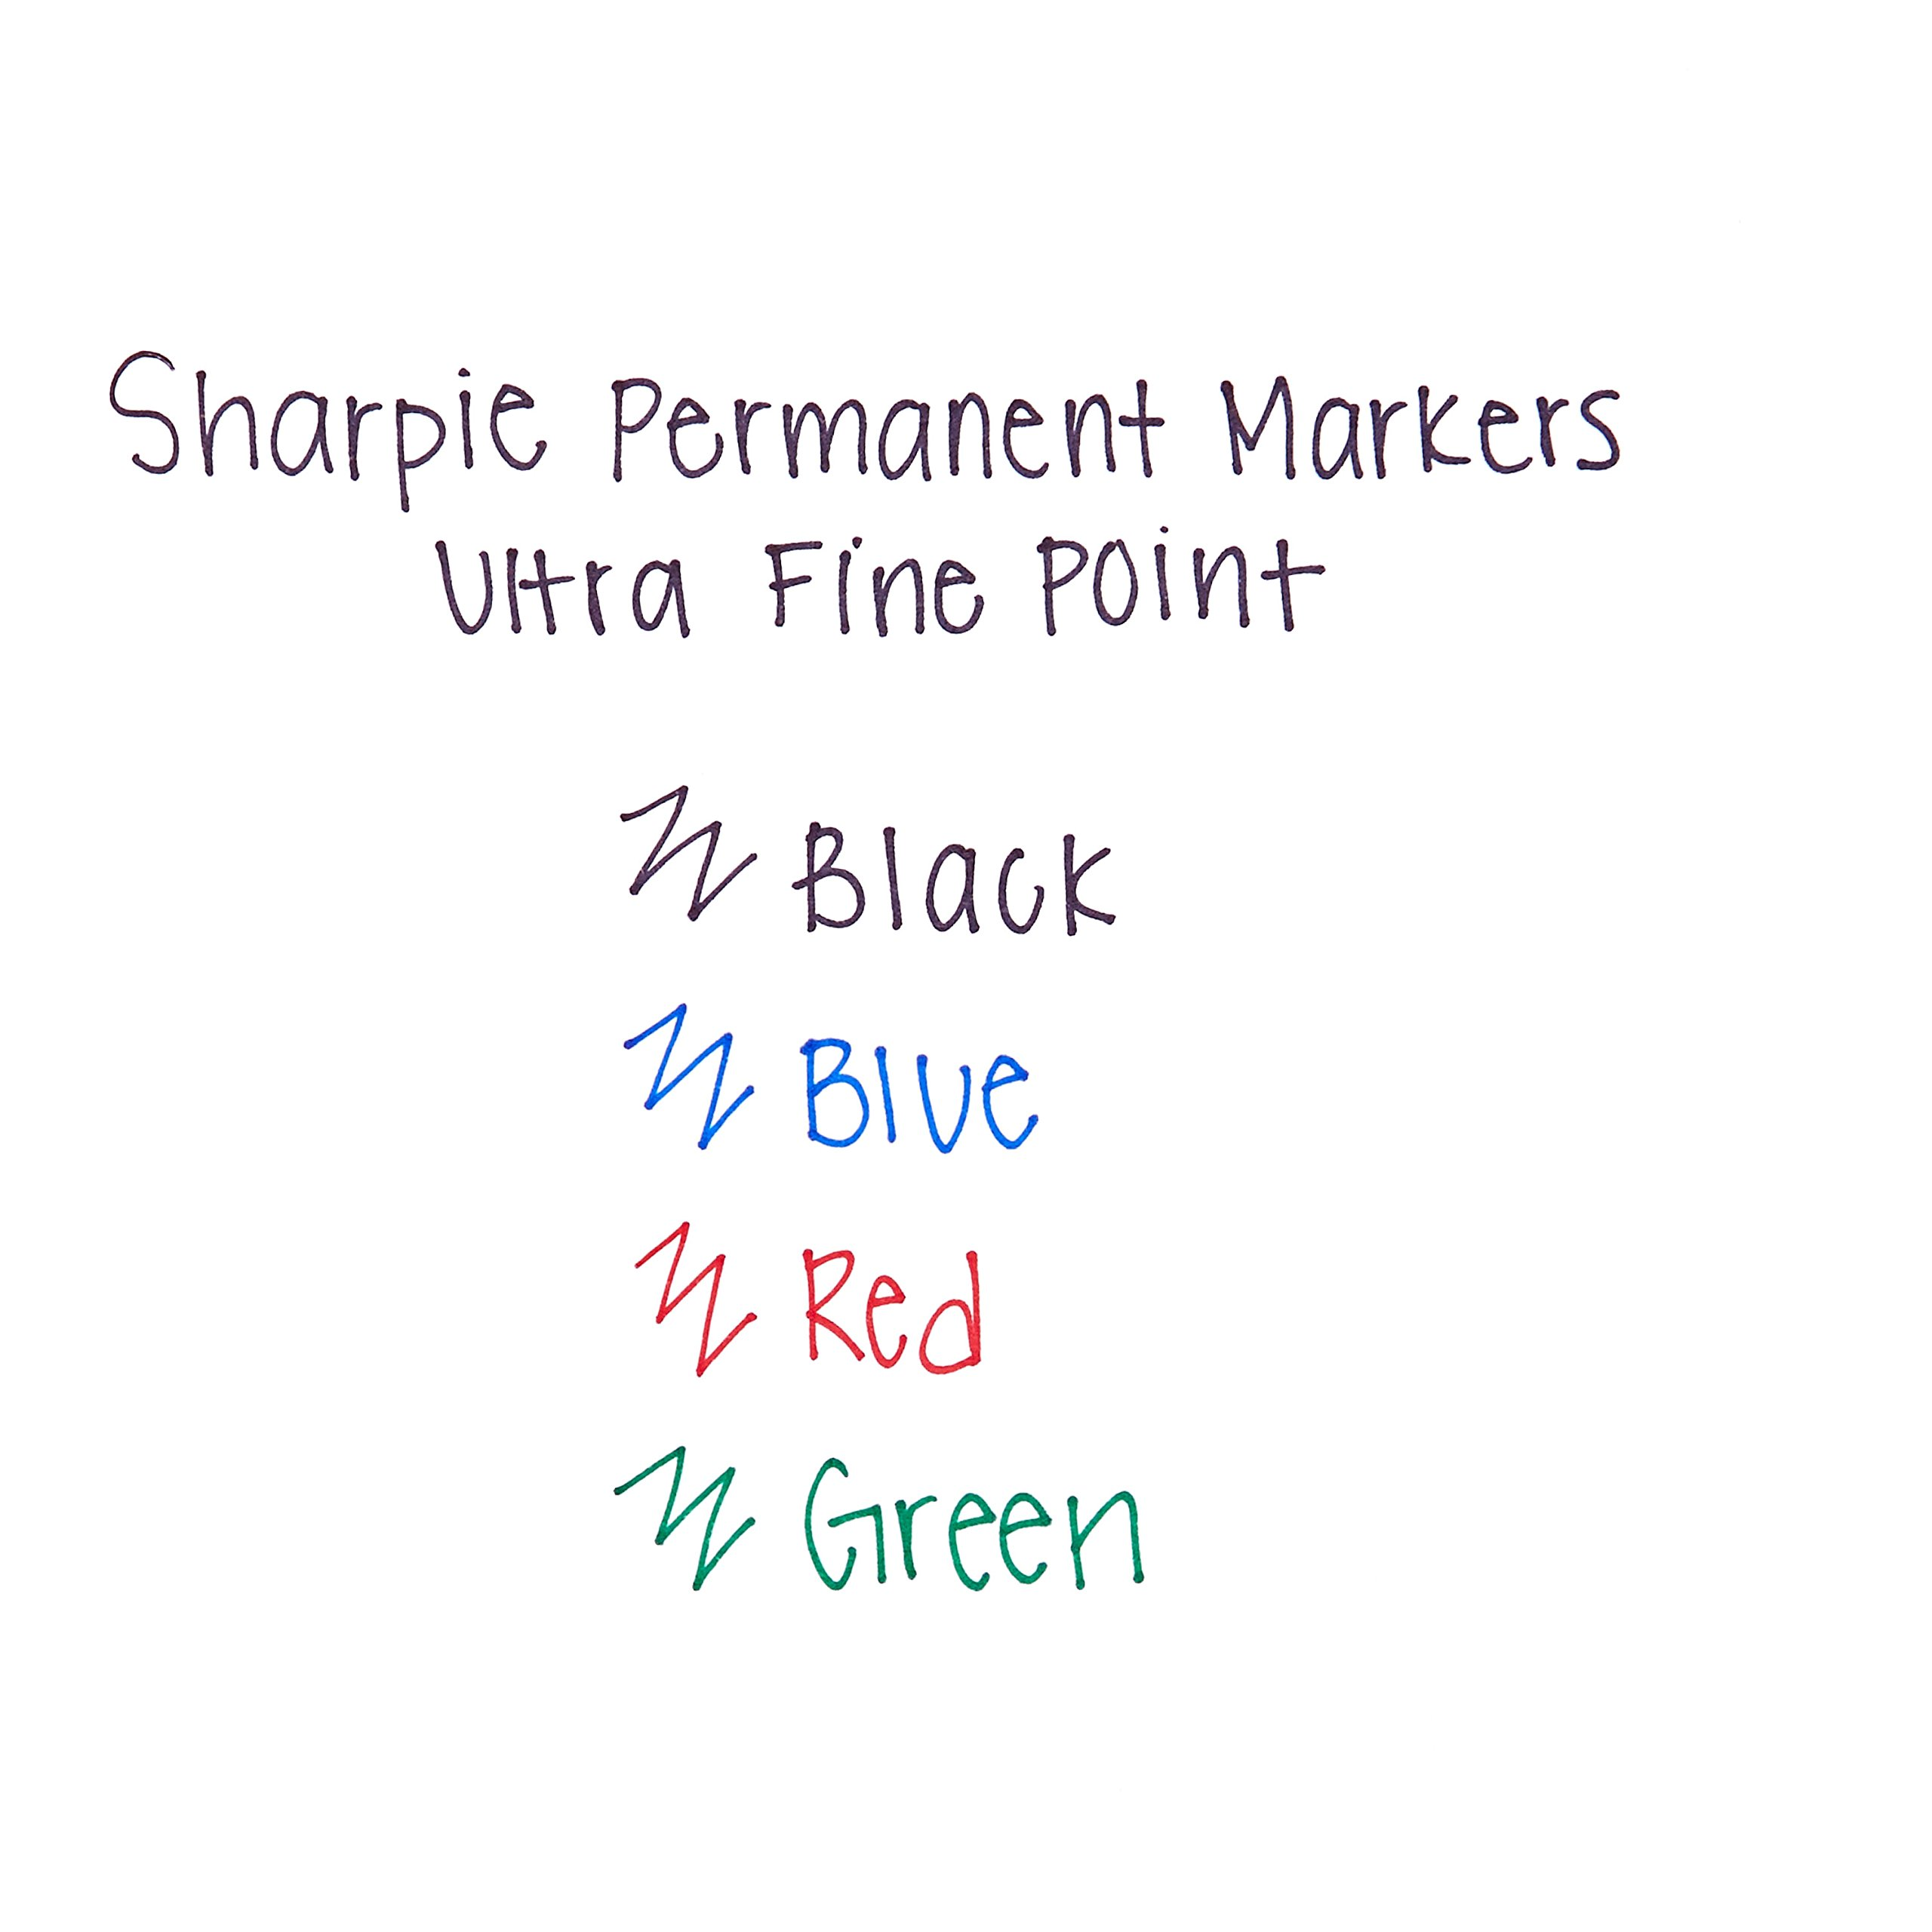 Sharpie Permanent Markers, Ultra-Fine Point, Black, 24-Count by Sharpie (Image #5)